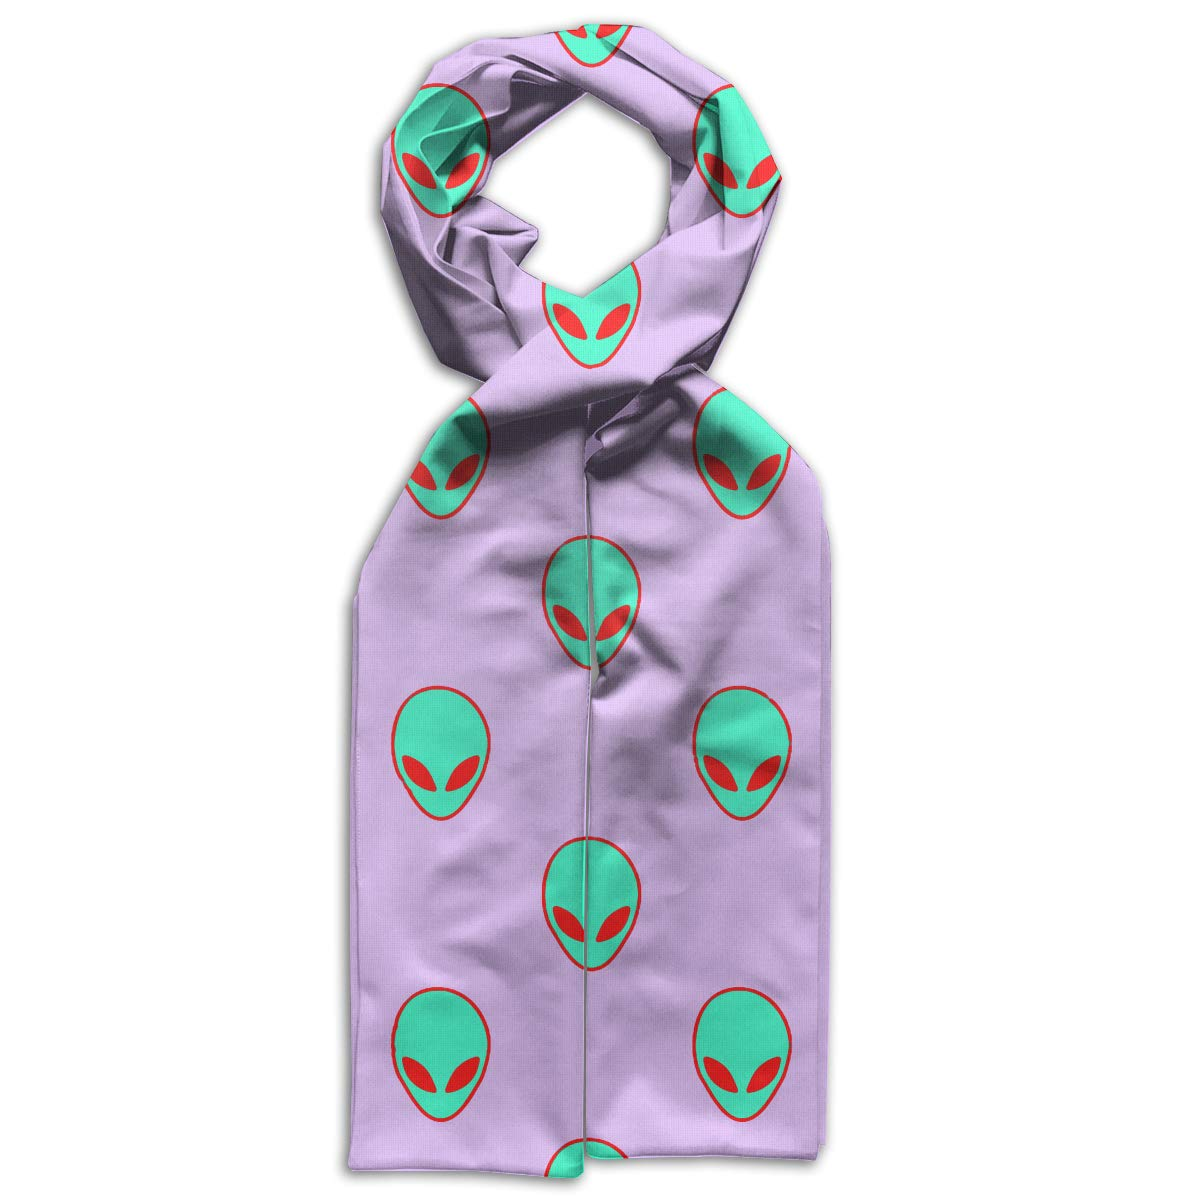 Green Alien Head Kids Printed Scarf Soft Winter Infinity Scarf Warmer Travel Scarf For Kids Perfect Birthday Gift